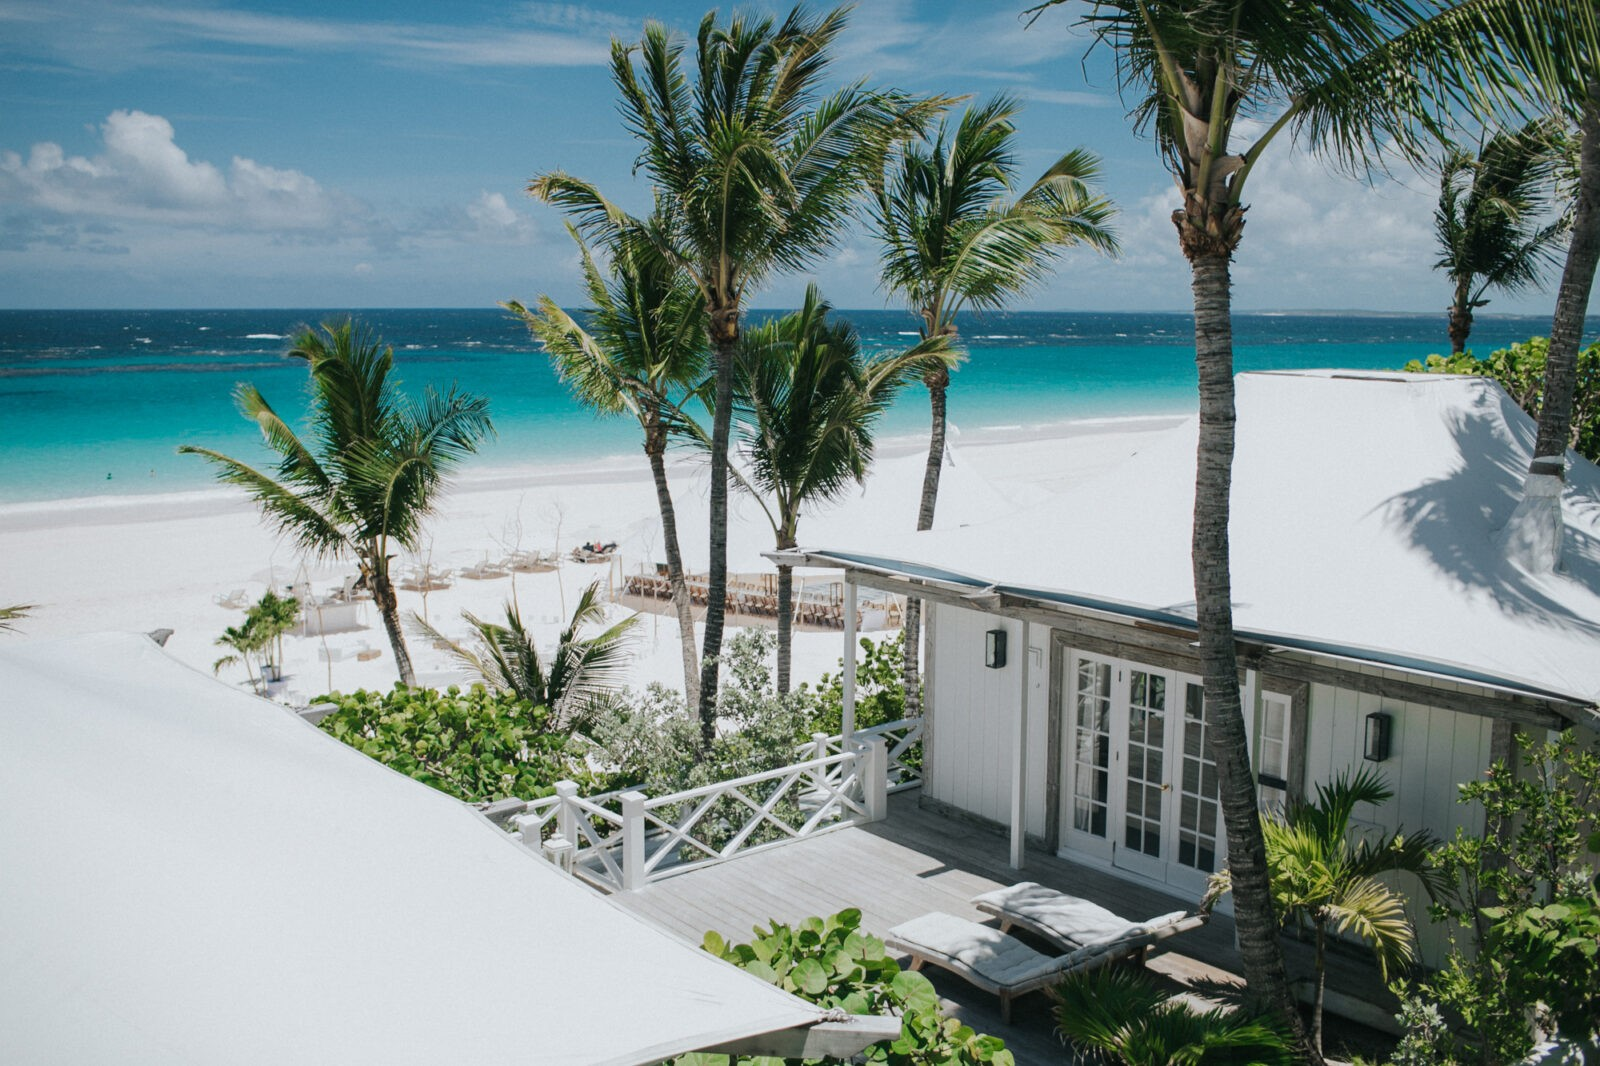 ocean view club bahamas